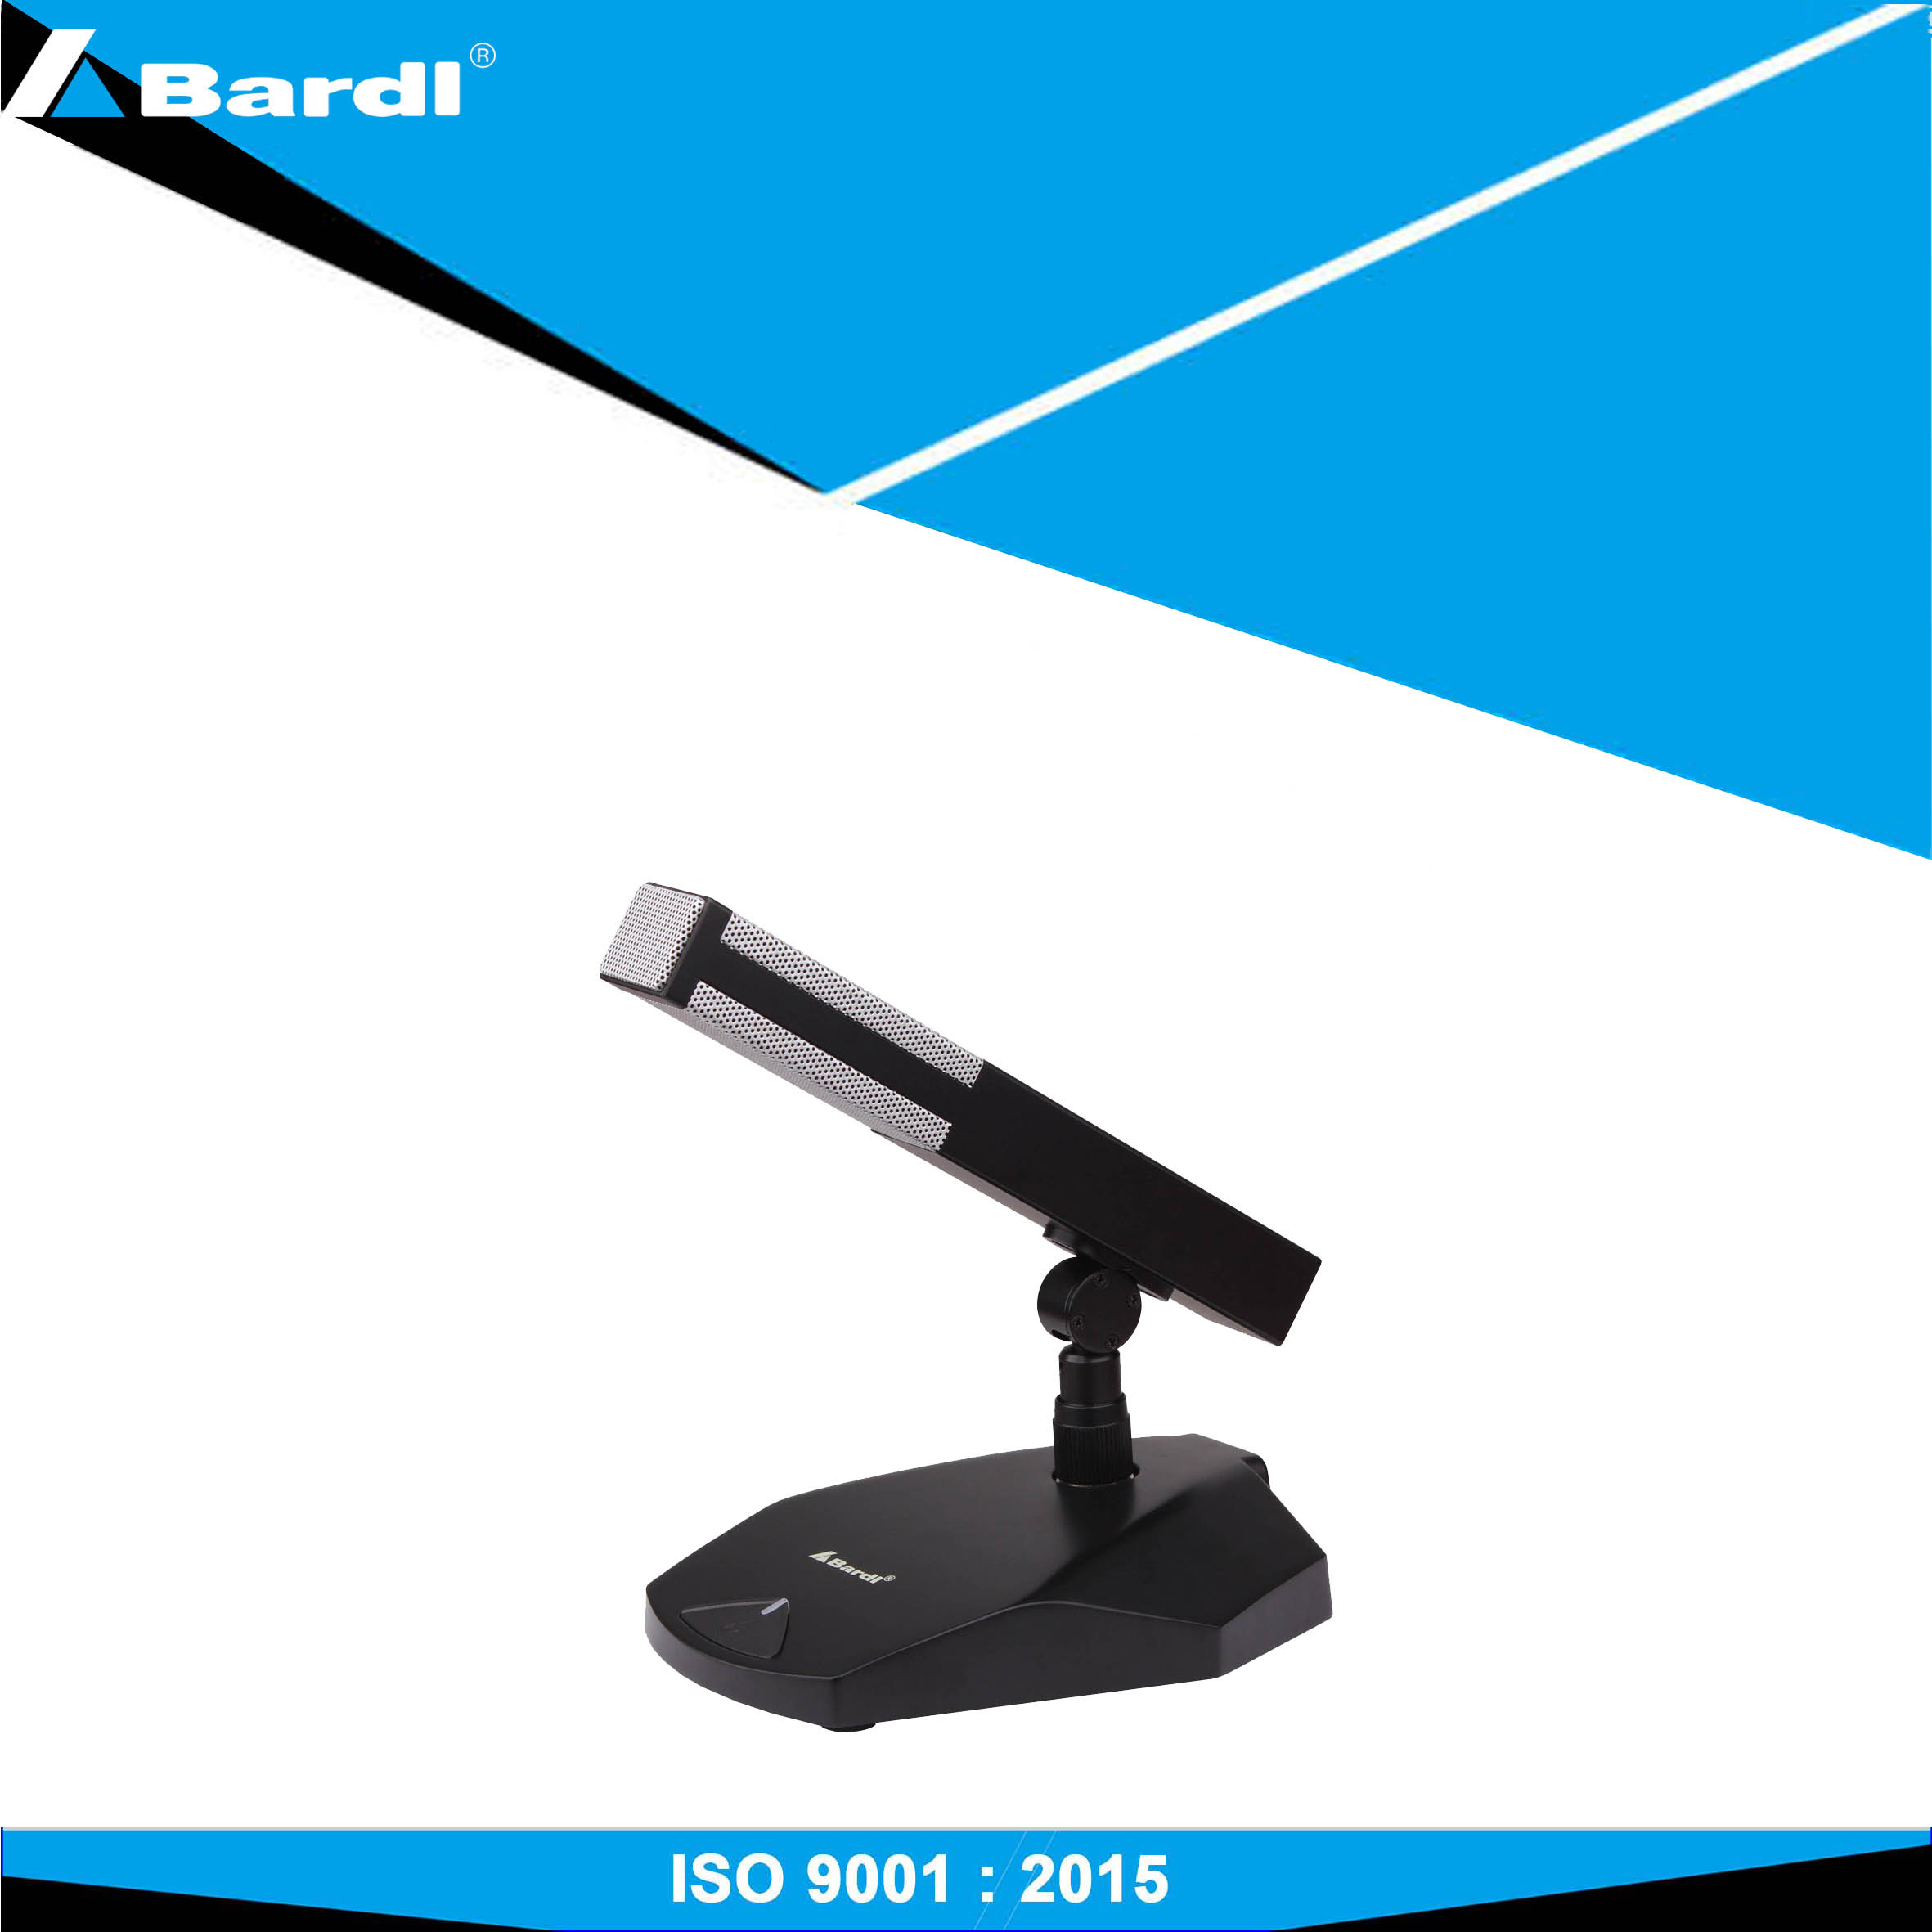 Bardl conference system BD-330